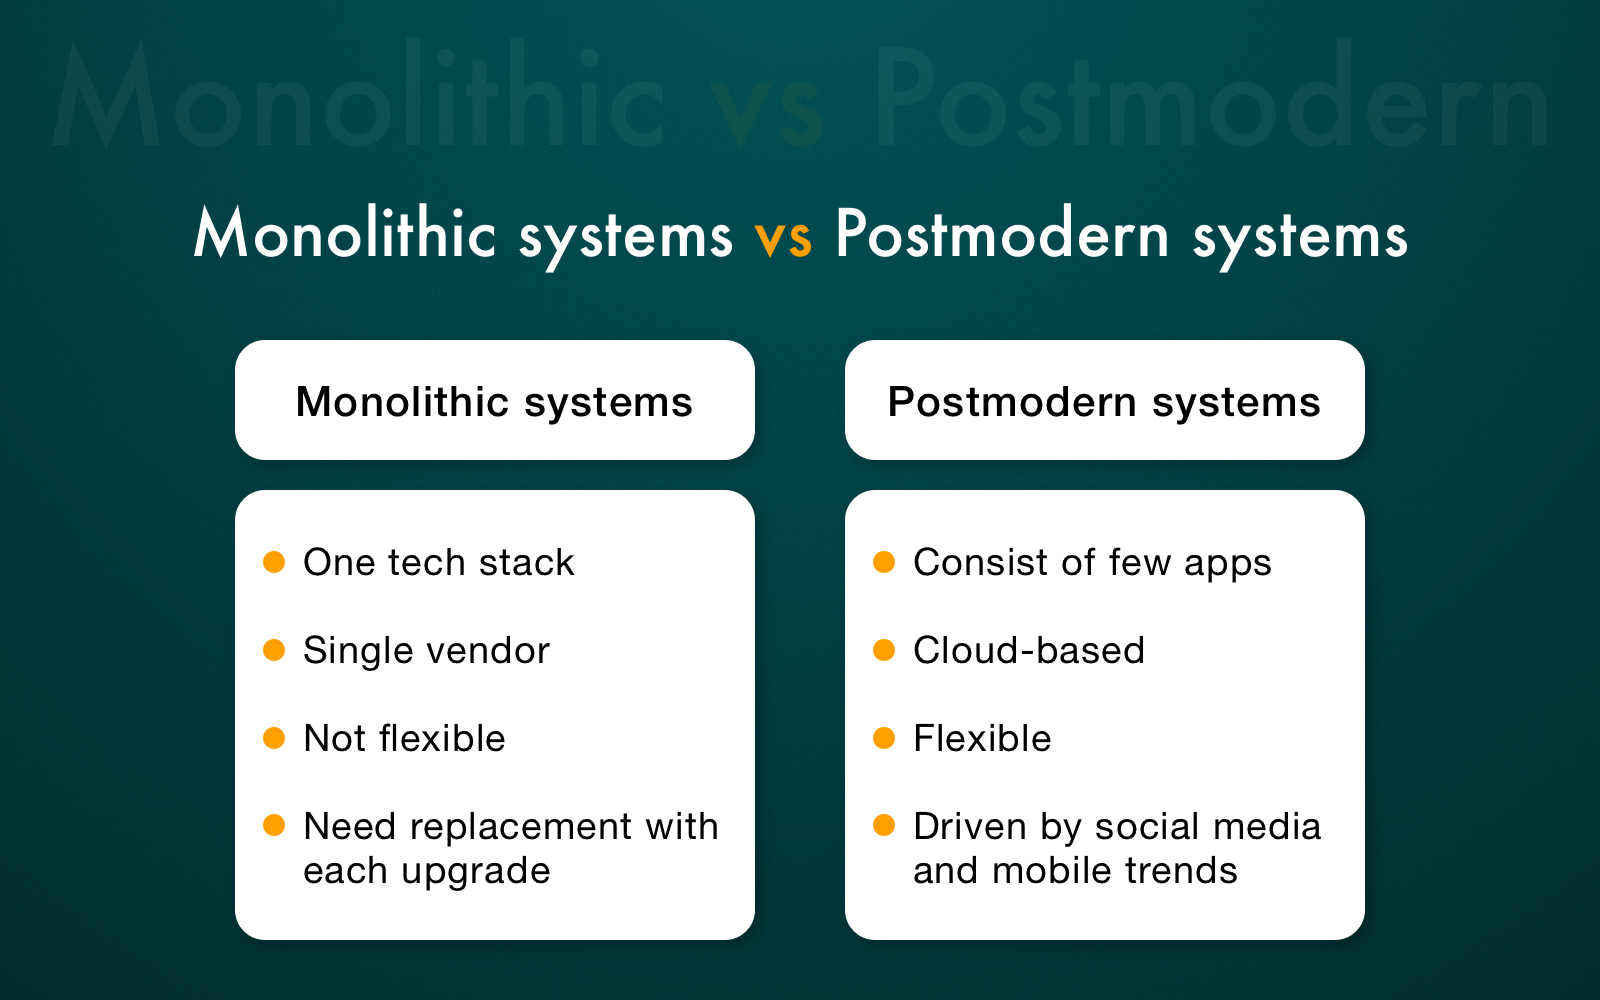 Monolithic systems vs postmodern suites comparison